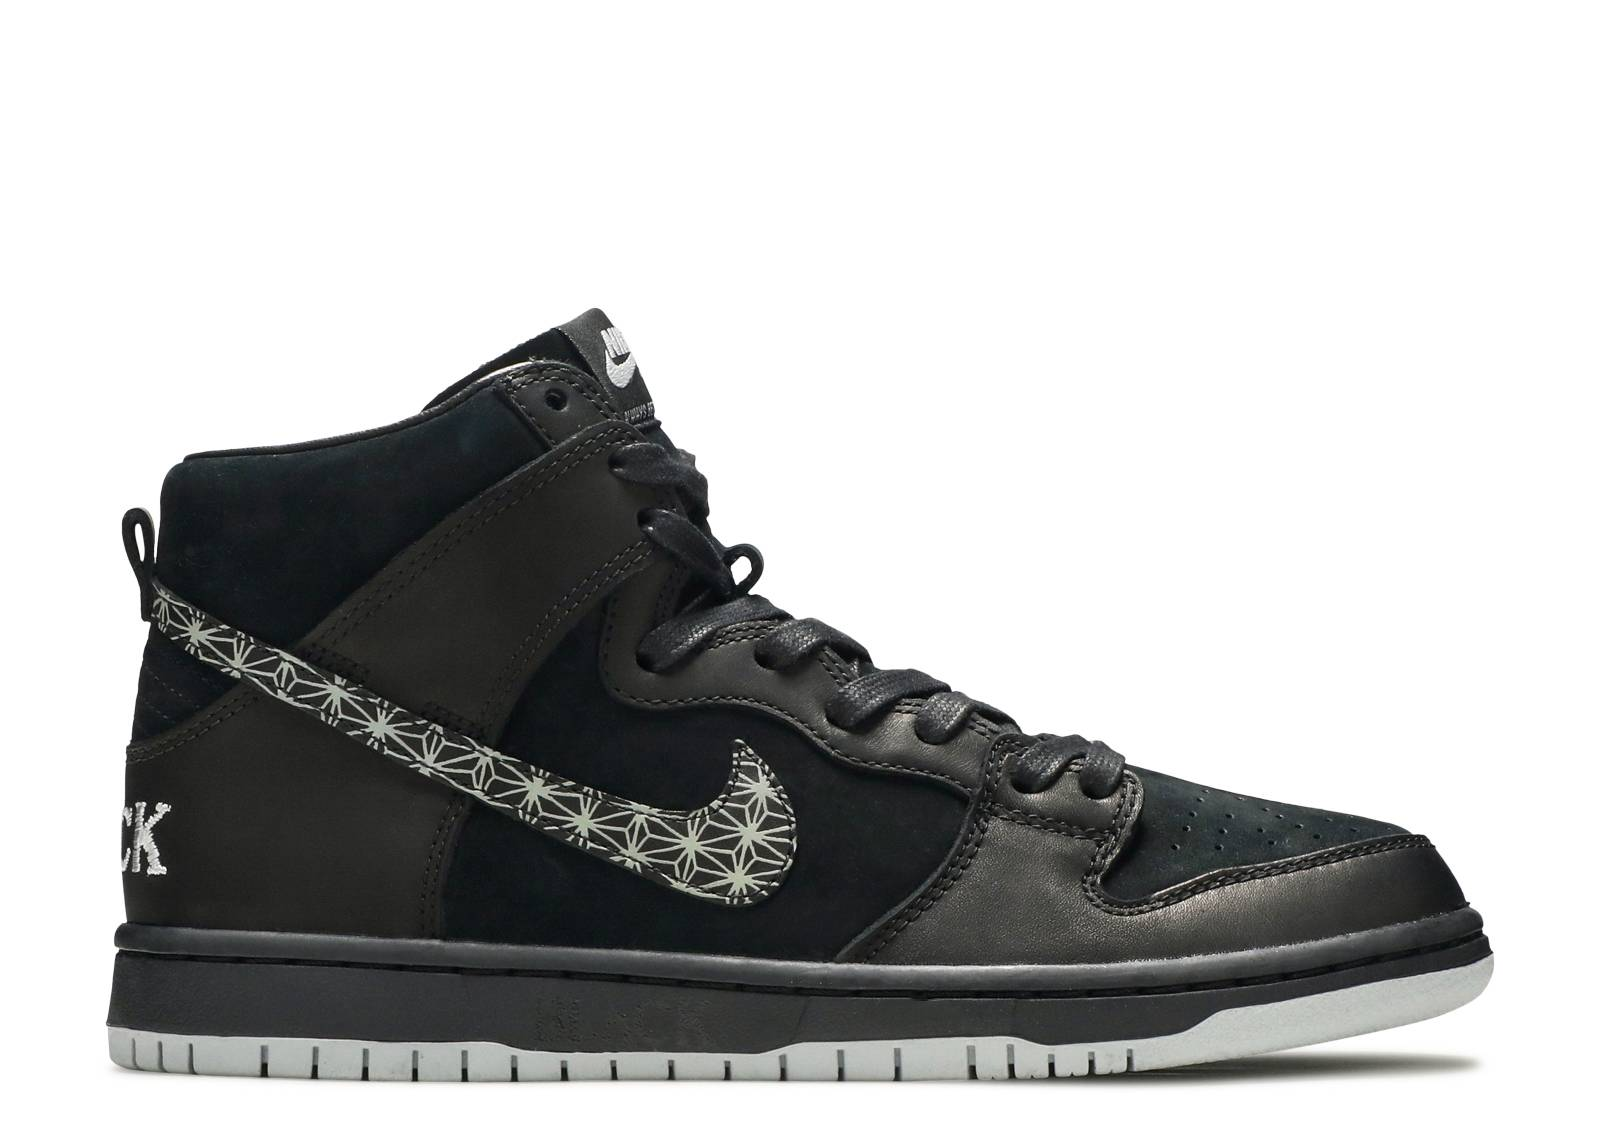 "Black Bar x SB Zoom Dunk High Pro 'Black' ""Black"""